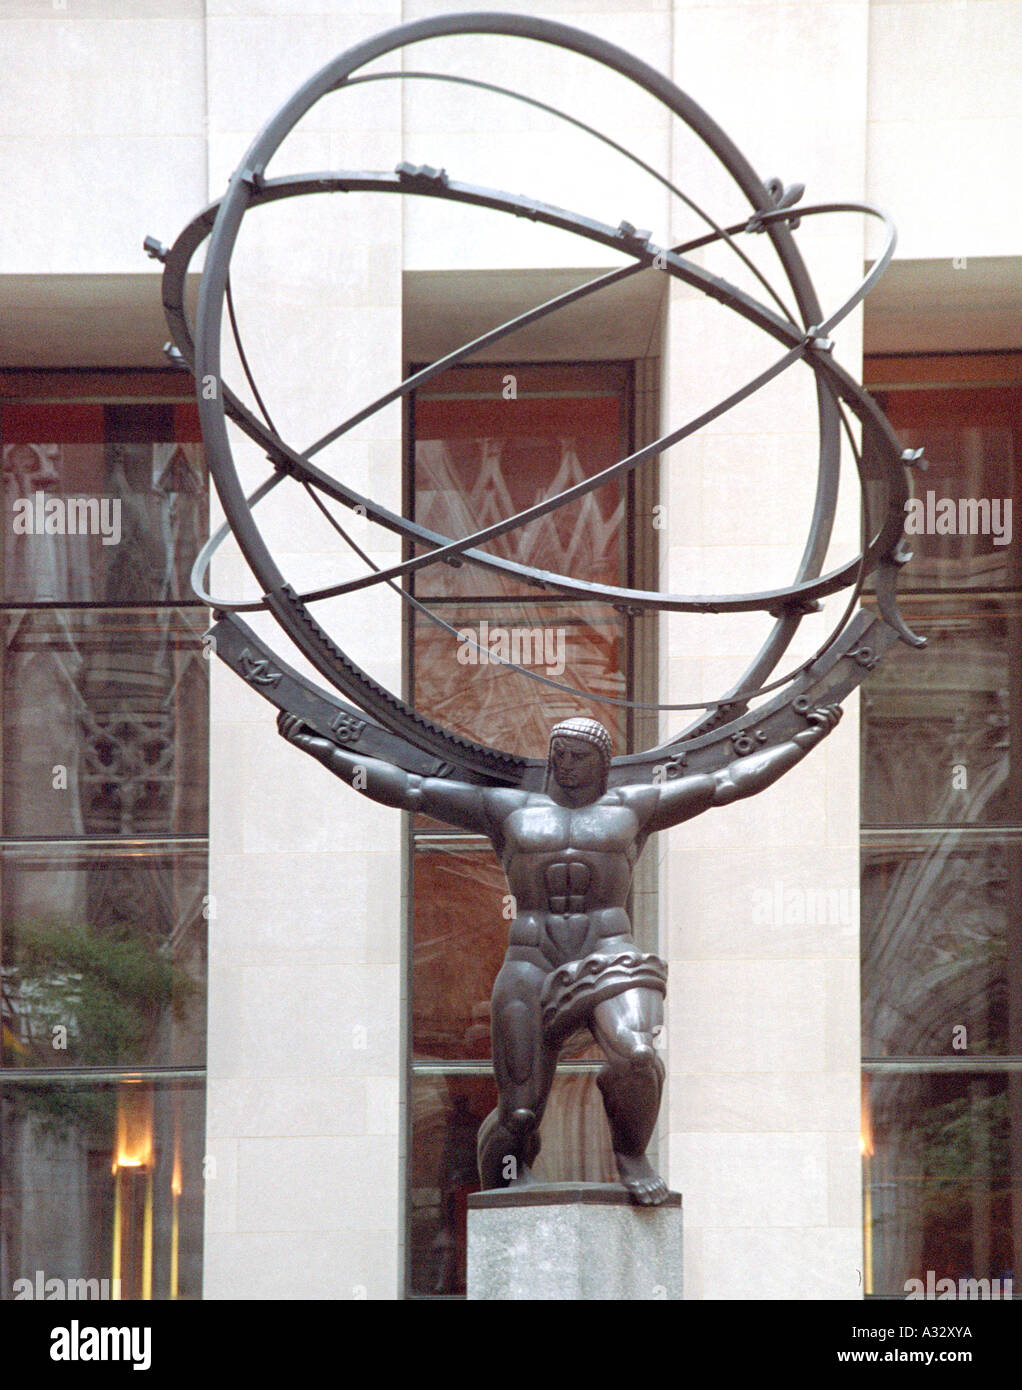 Statue of Atlas in Rockefeller Center New York City - Stock Image